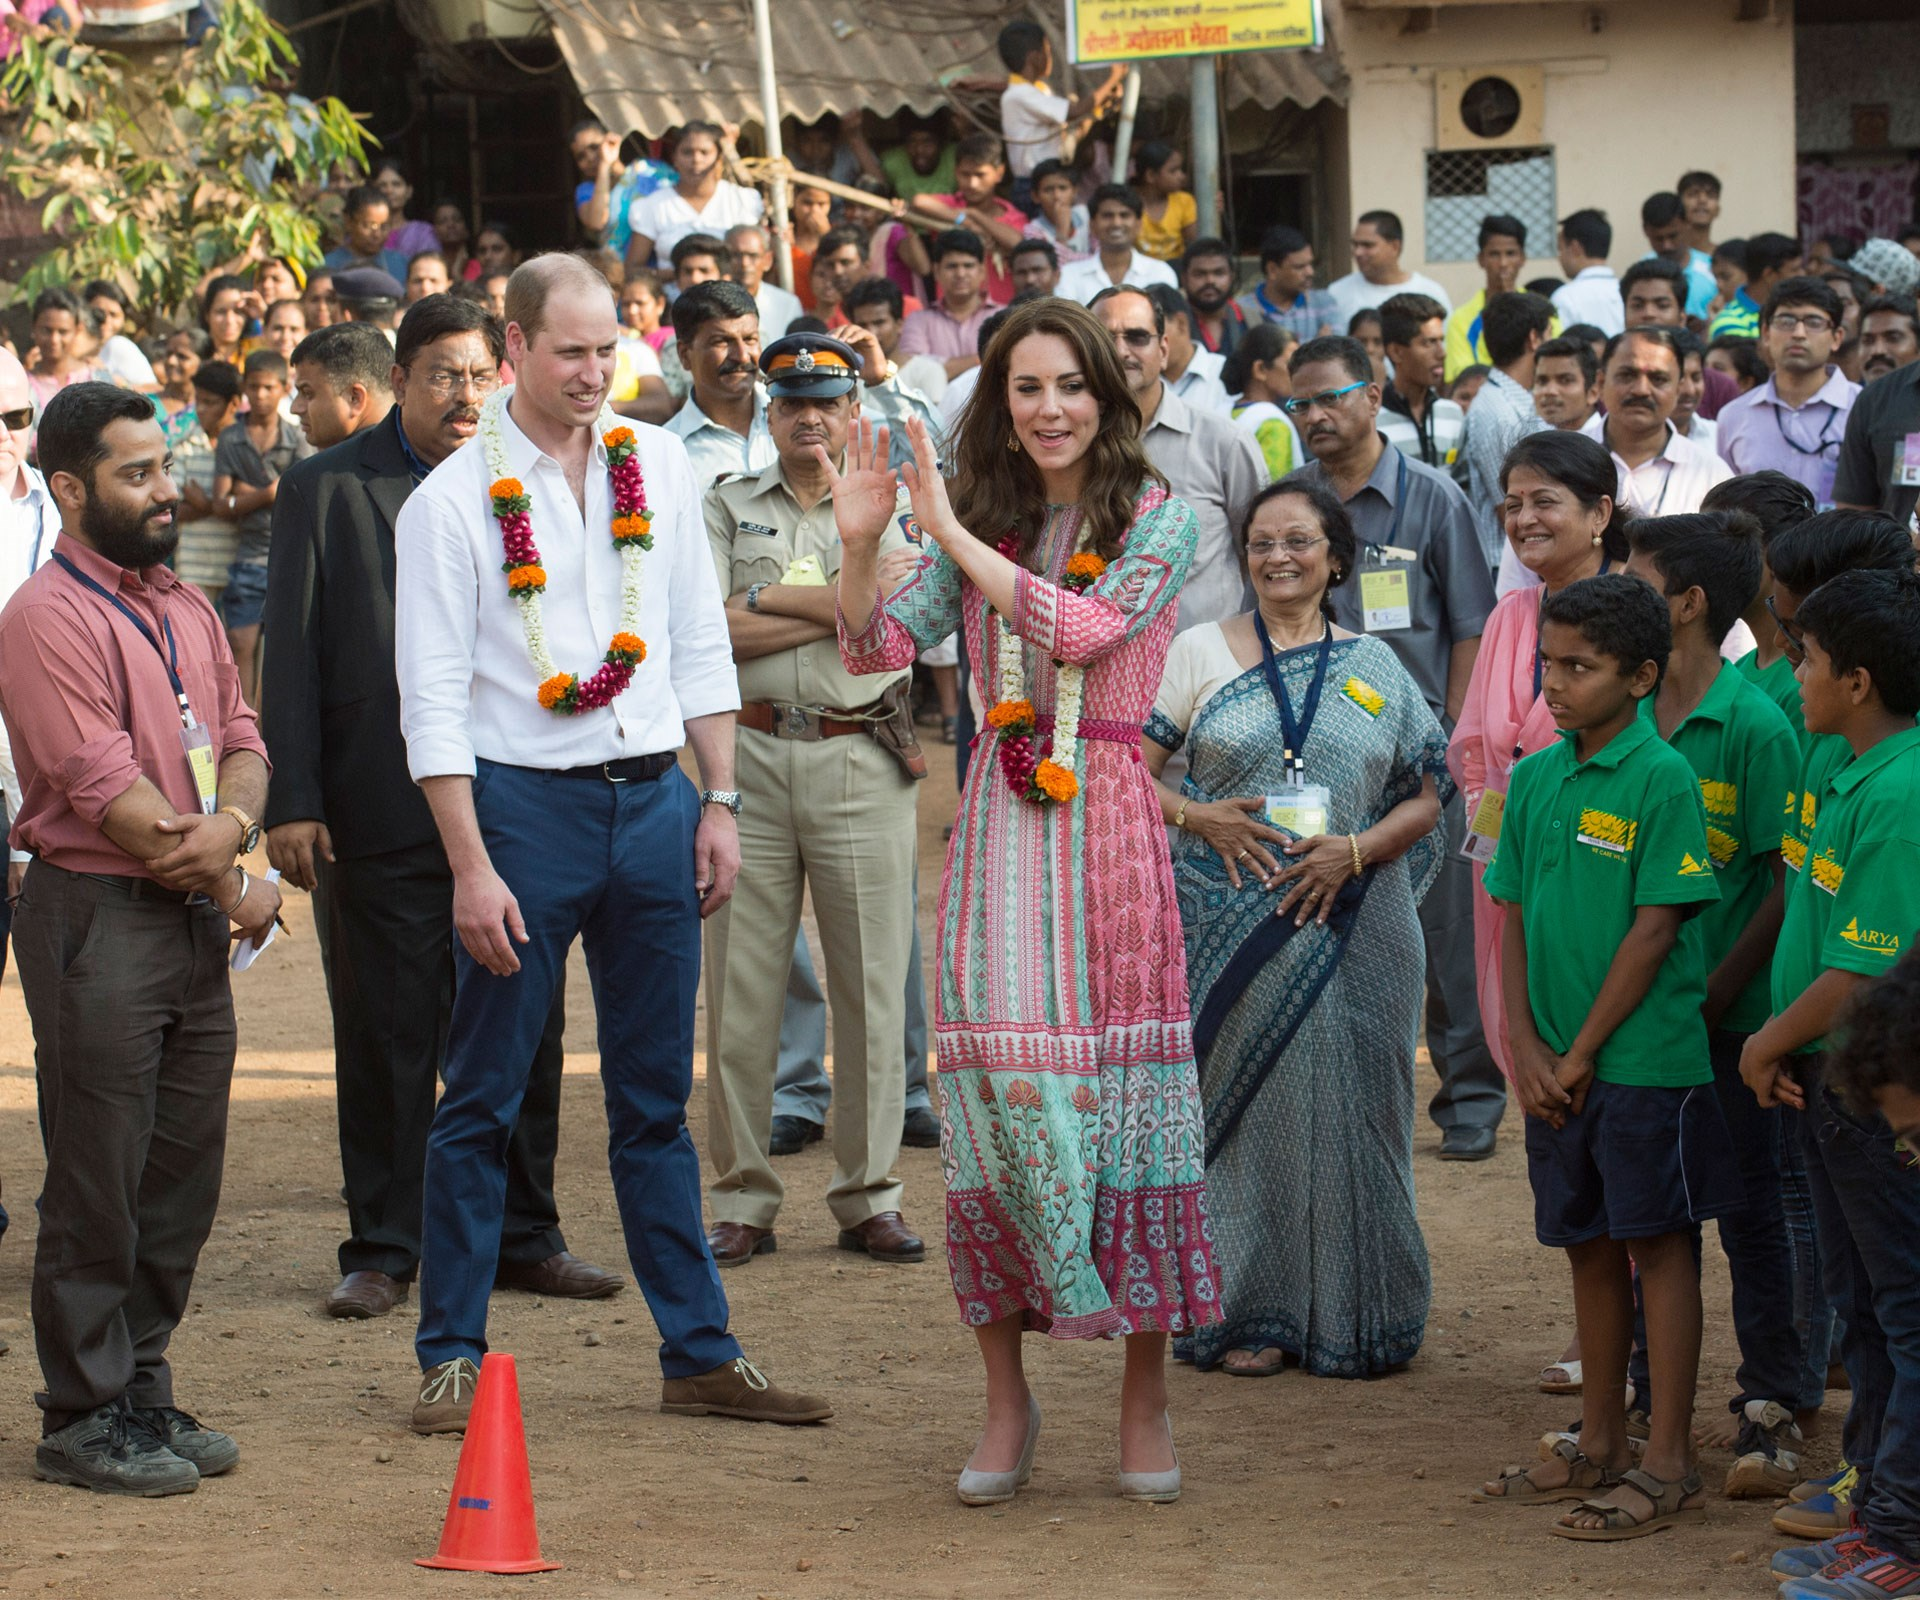 April 2016: The couple have fun with locals during their tour of India.